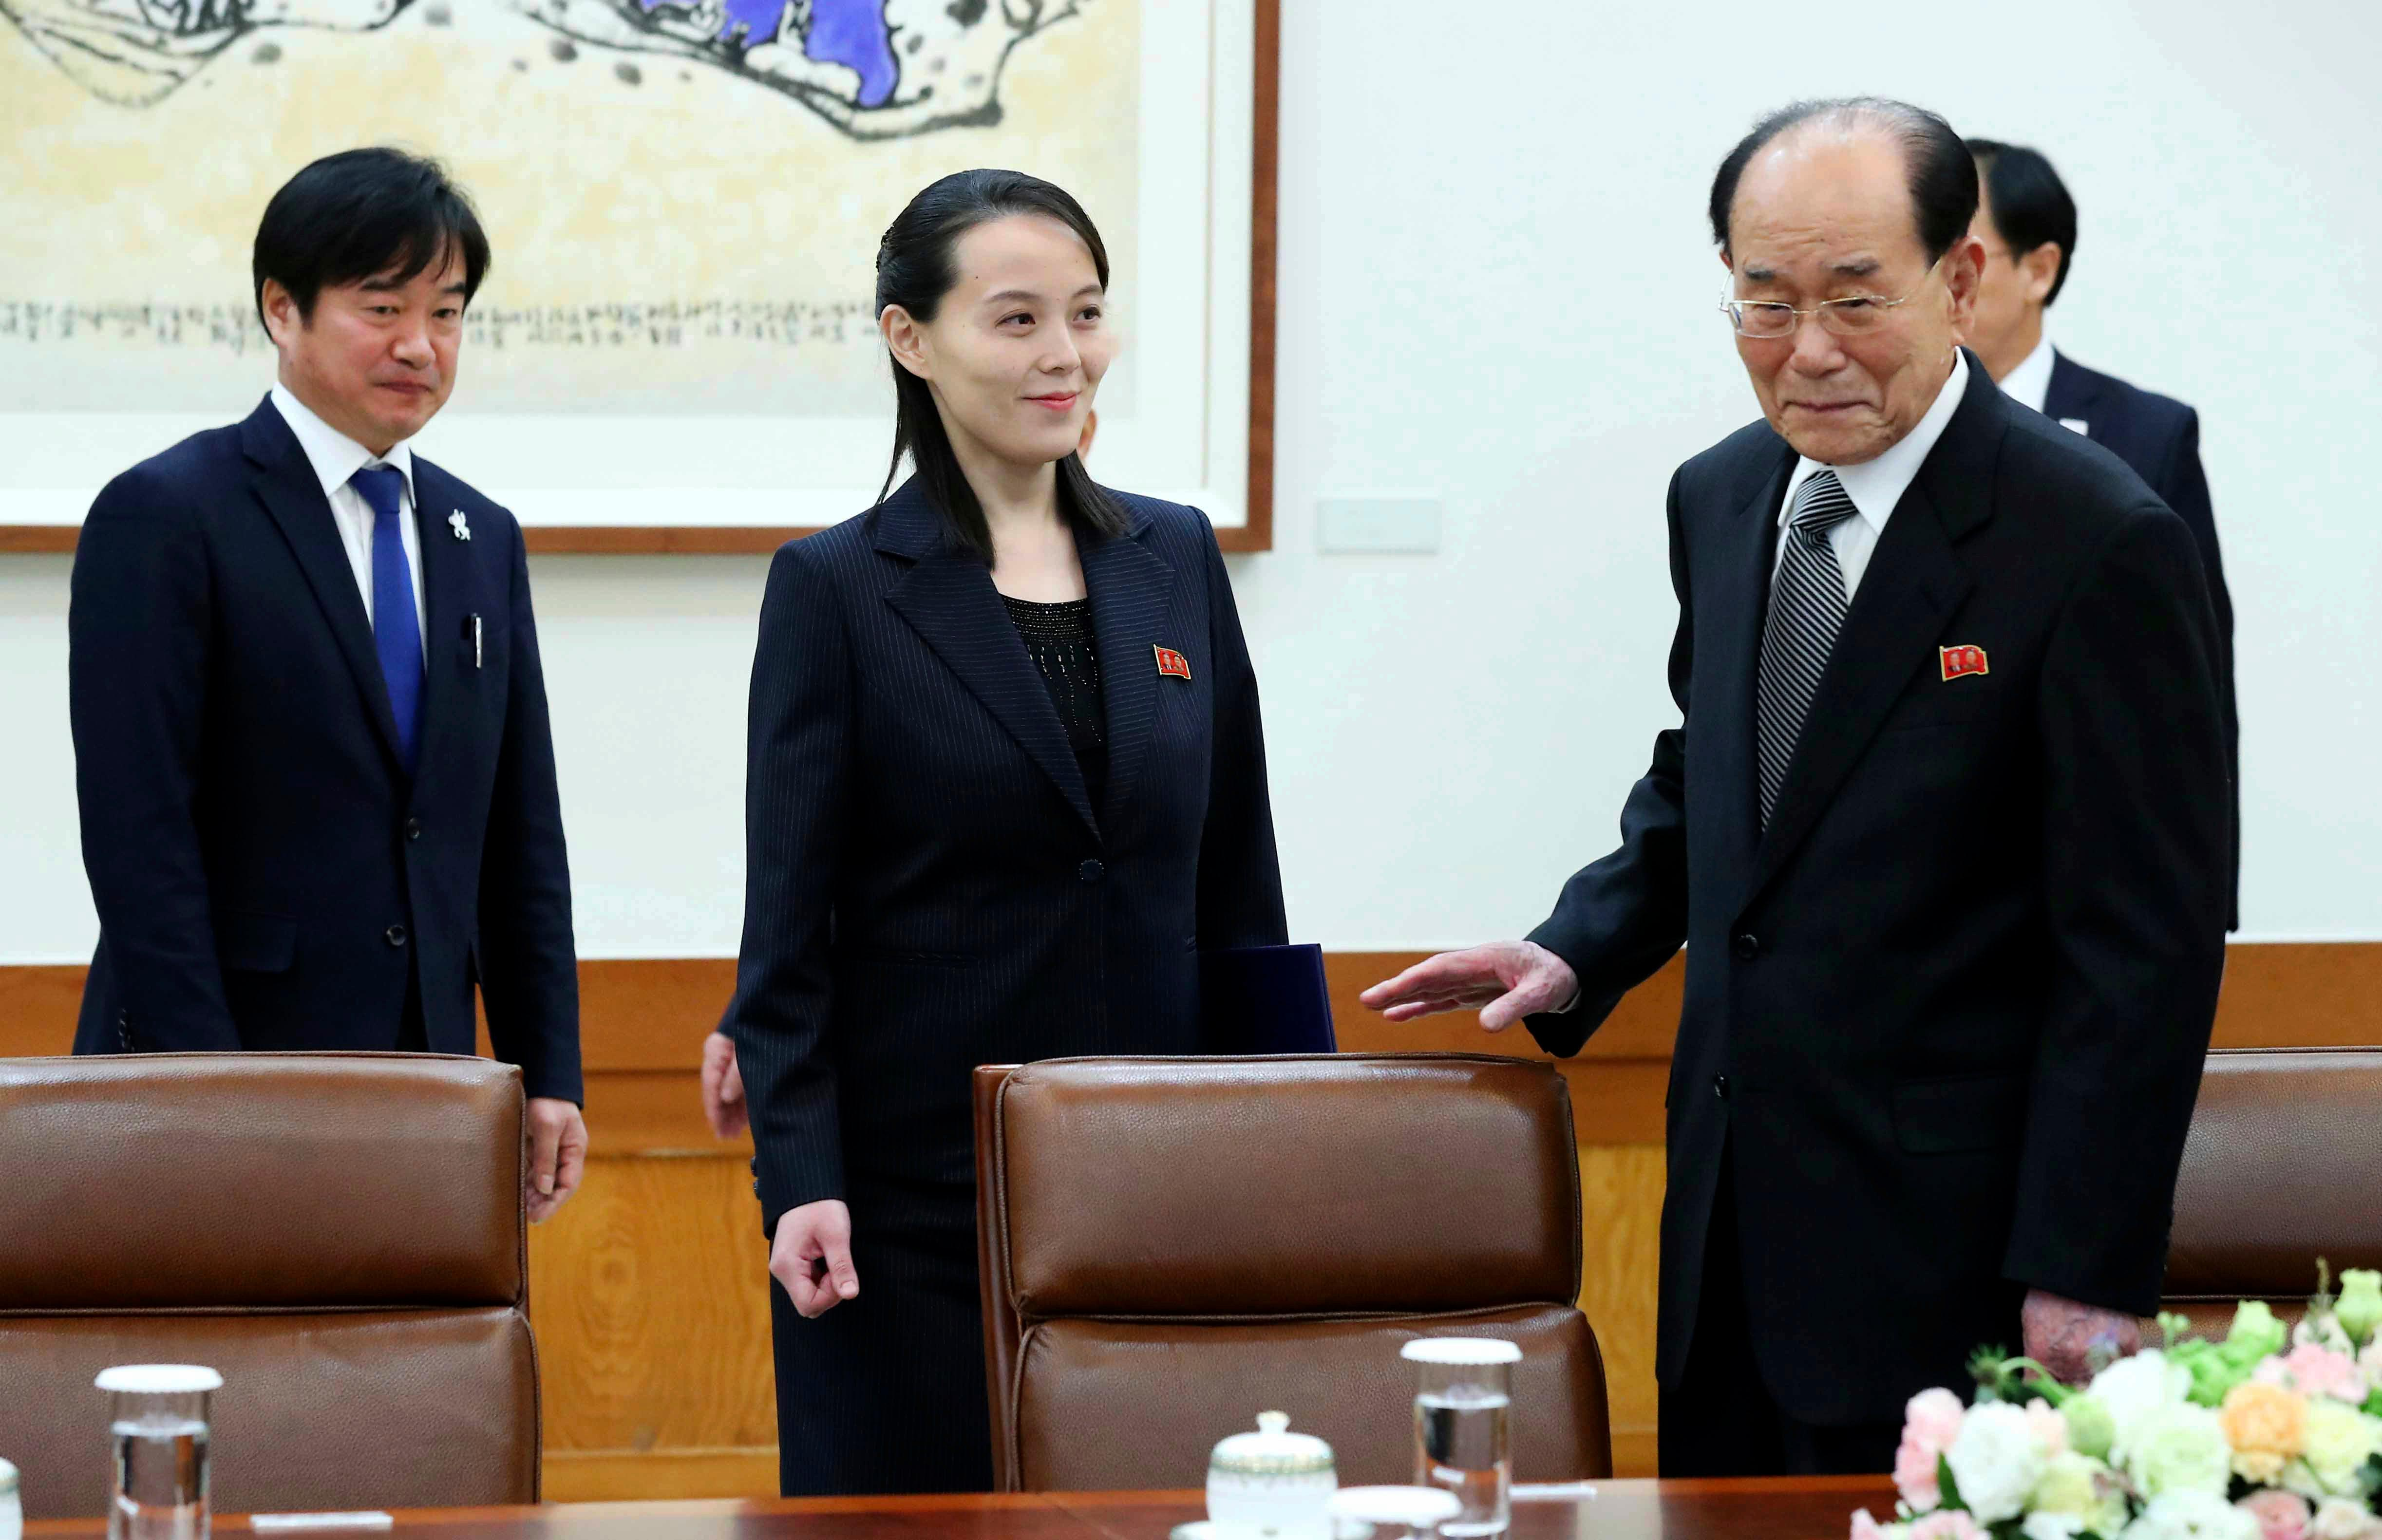 Kim Yo Jong, center, sister of North Korean leader Kim Jong Un, and the country's nominal head of state Kim Yong Nam, right, arrive to meet South Korean President Moon Jae-in at the presidential house in Seoul, South Korea, Saturday, Feb. 10, 2018.  President Moon on Saturday met with the senior North Korean officials over lunch at Seoul's presidential palace in the most significant diplomatic encounter between the rivals in years.(Kim Ju-sung/Yonhap via AP)